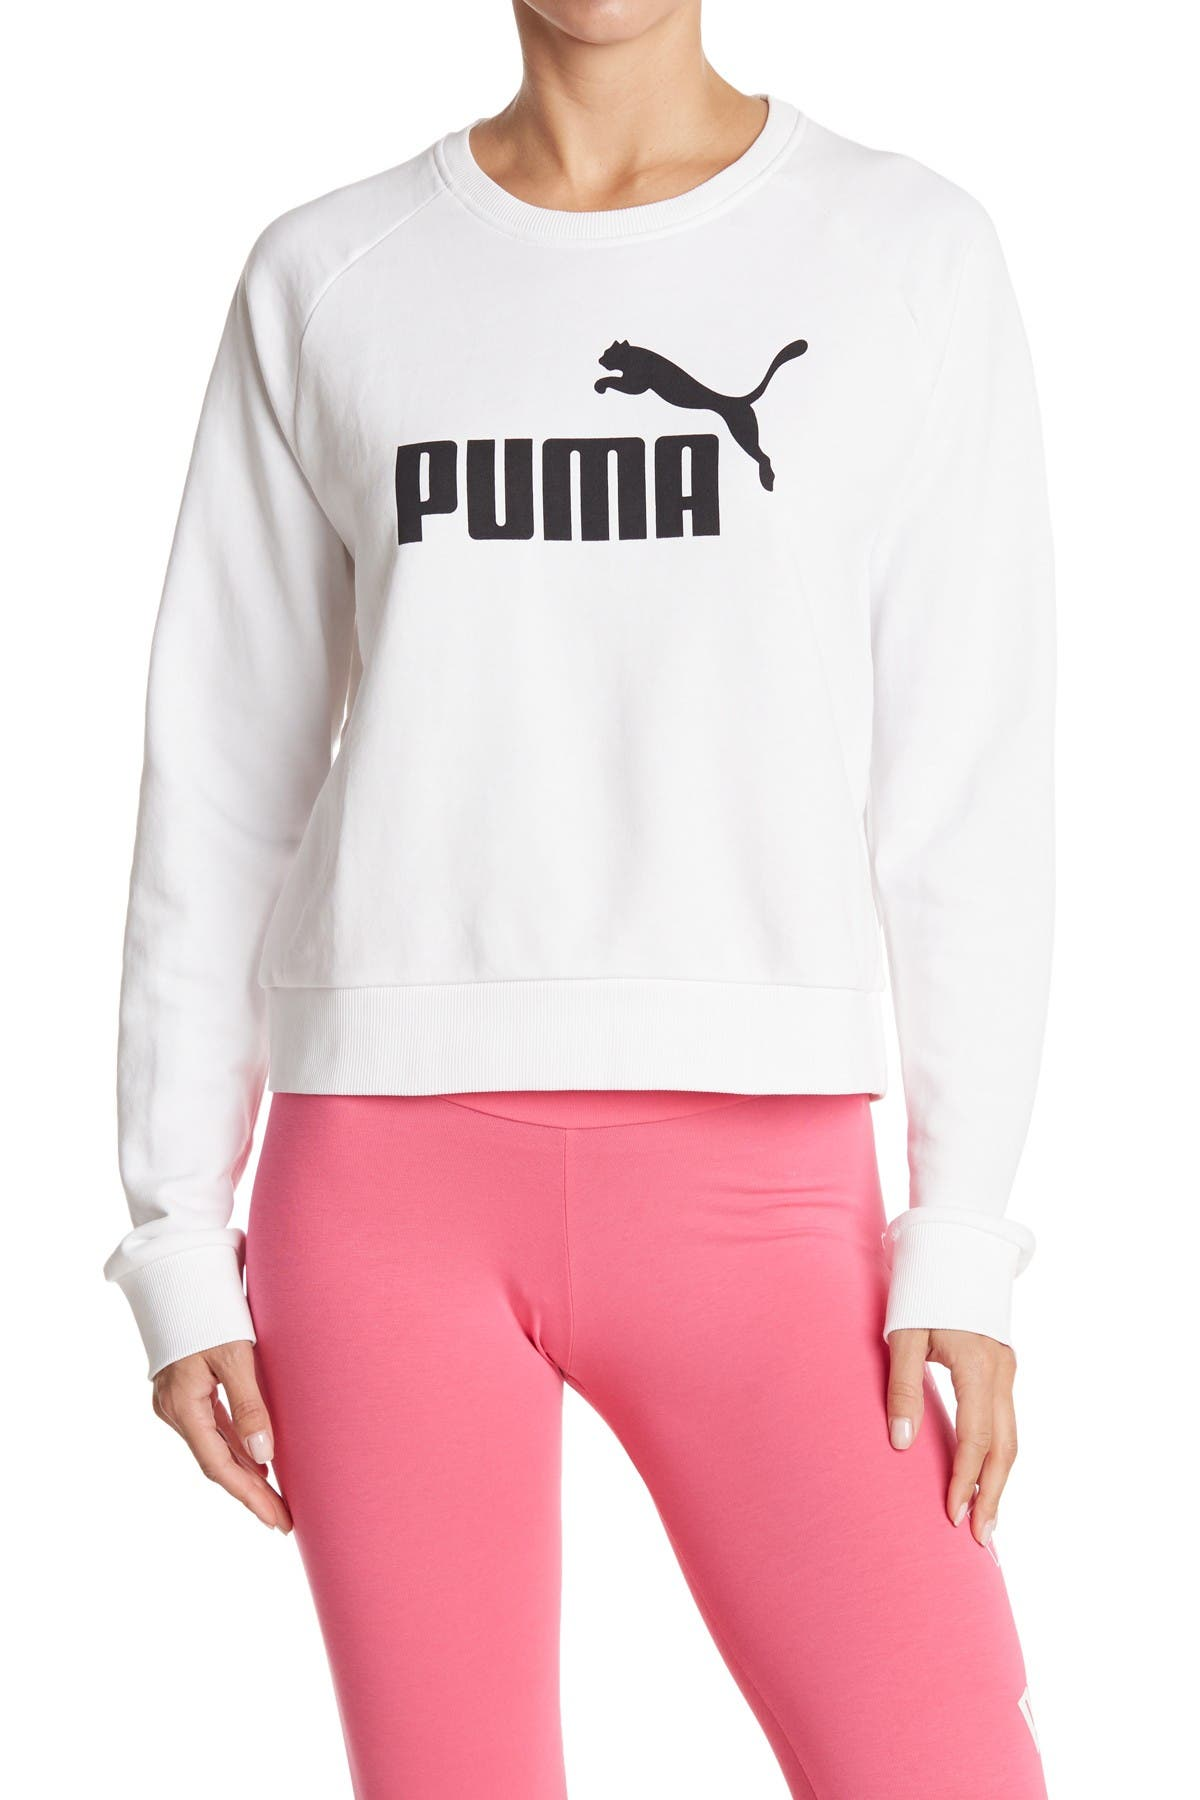 Image of PUMA No. 1 Crew Neck Sweatshirt